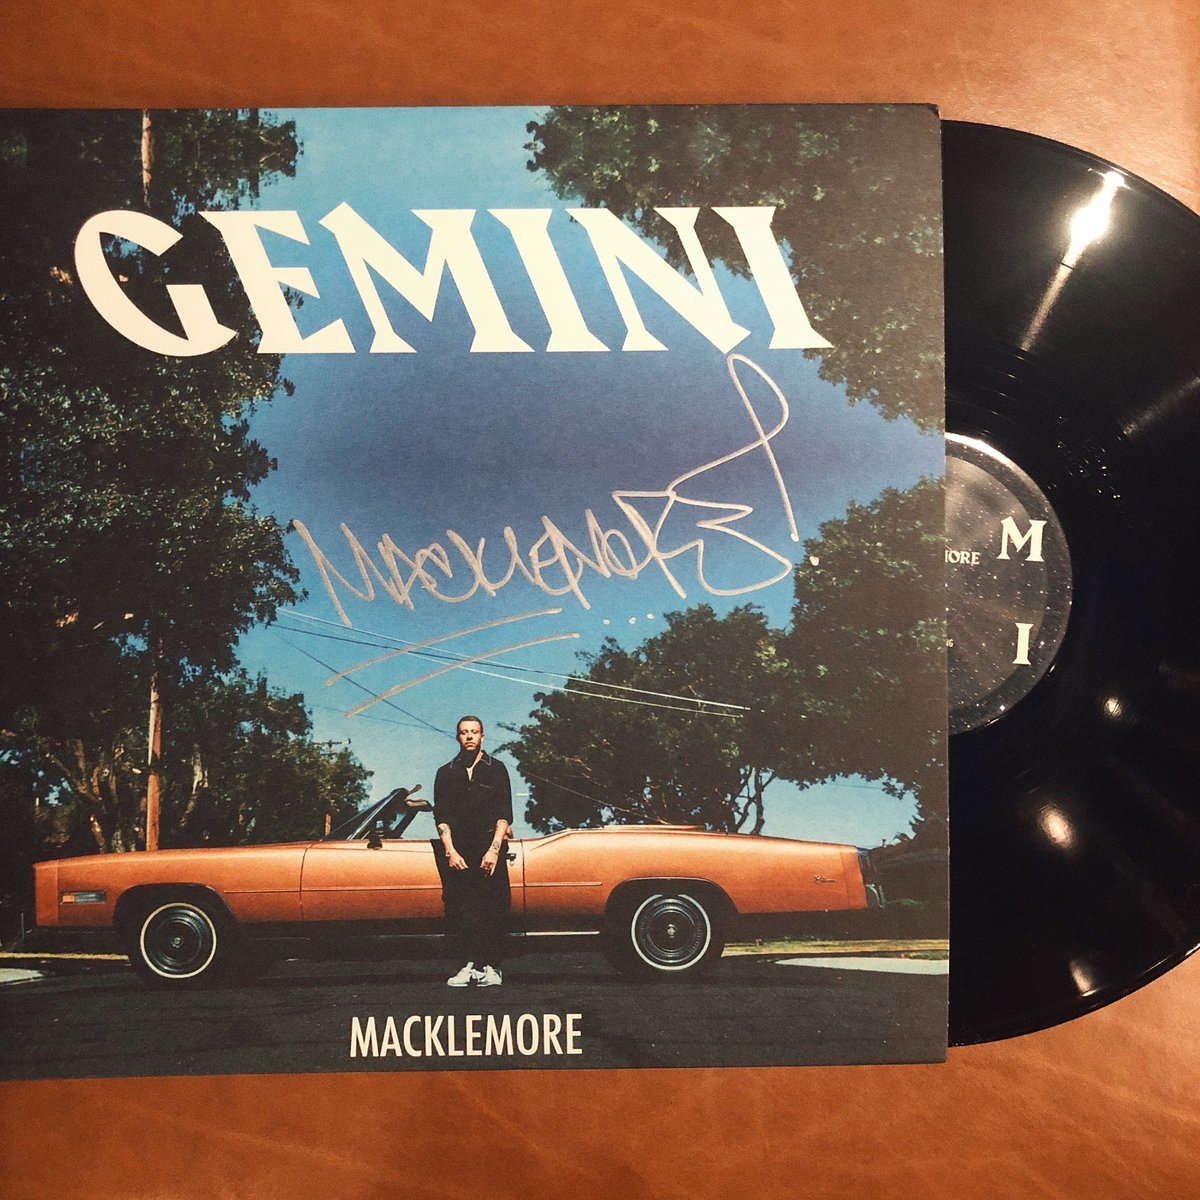 Gemini On Vinyl. Preorder now, ships February 1st. First 200 copies autographed! https://t.co/Vc2QR1rRDq https://t.co/4w3JHJ7xAP